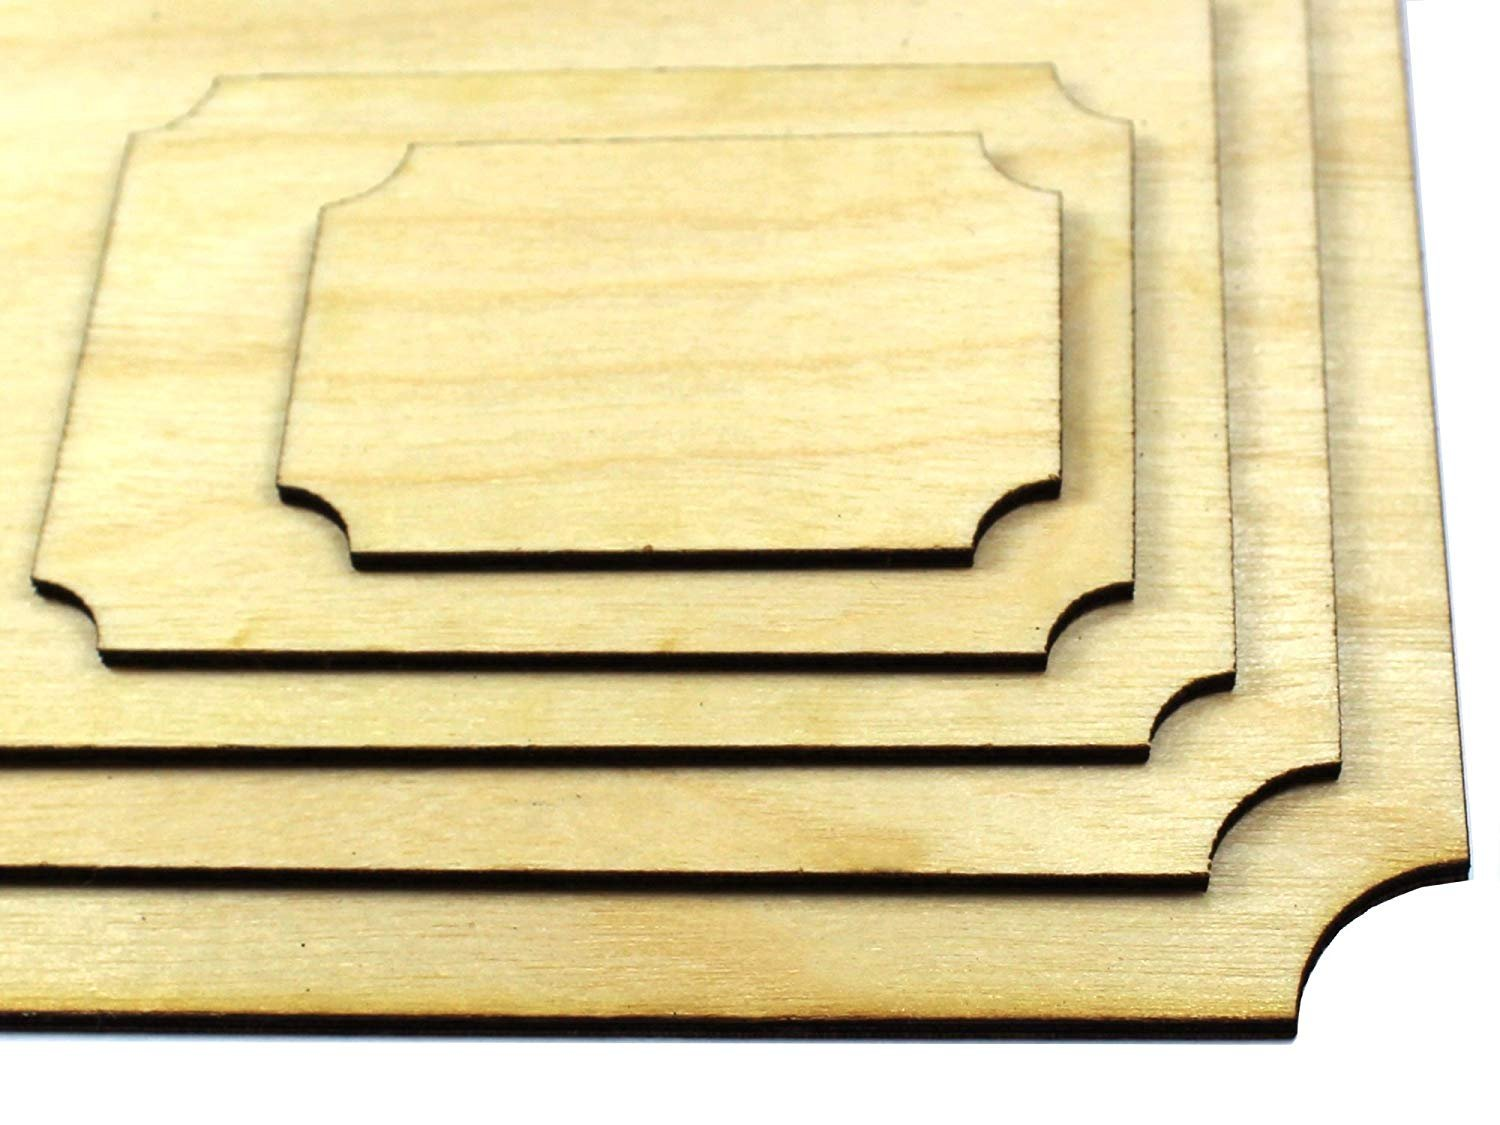 A4 PLY Wood Scalloped Plaque Craft Wooden Vintage Shape Pyrography Blank by CraftSupplyUK, 4 Pack UK STYLE HOUSE